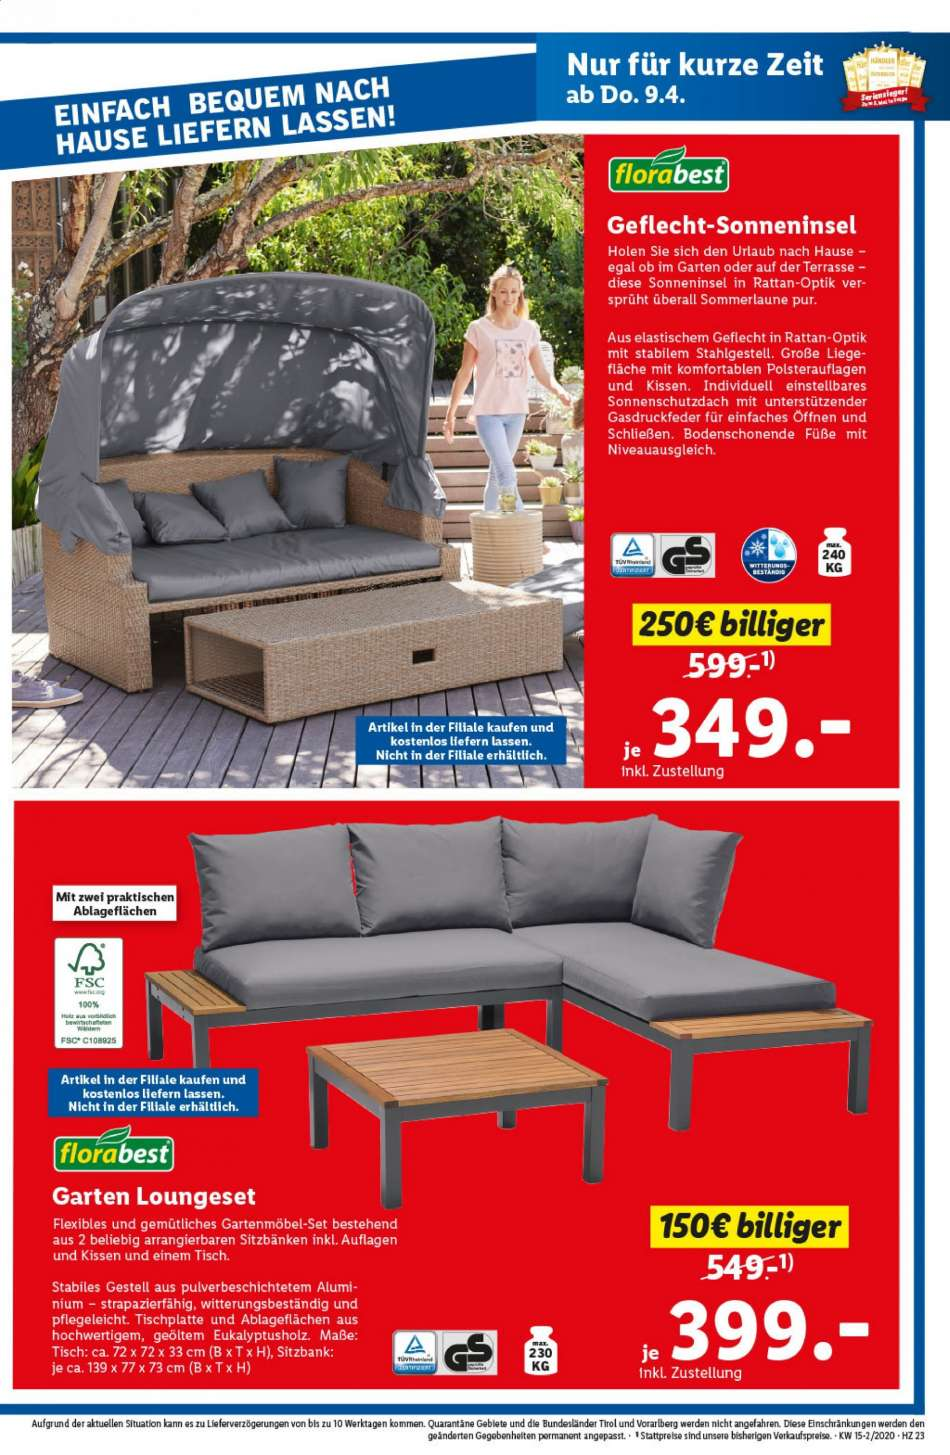 Full Size of Lidl Sonnenliege Wohnzimmer Lidl Sonnenliege